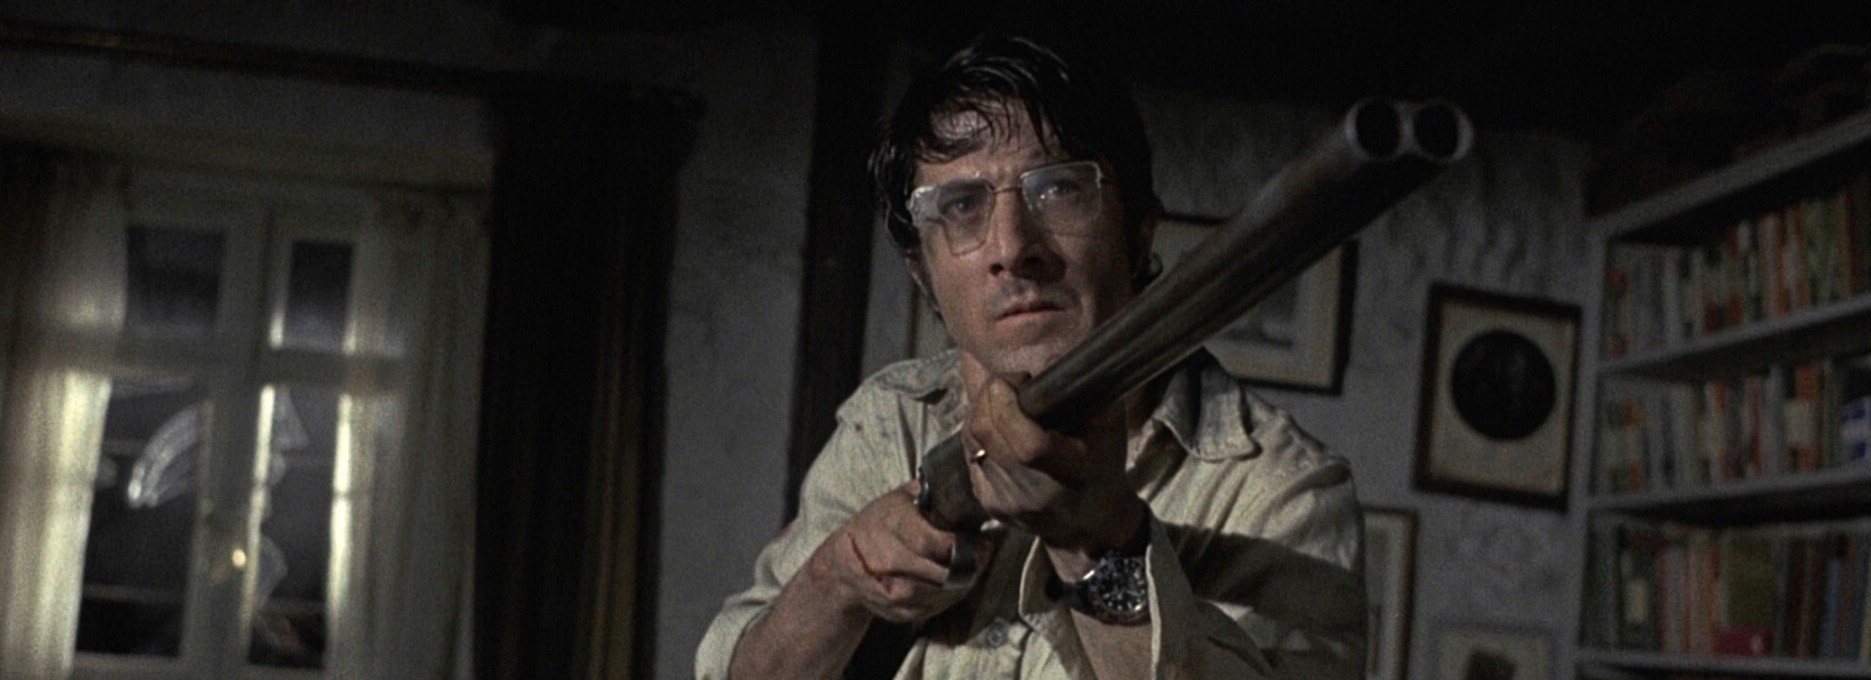 straw dogs 1971 movie review